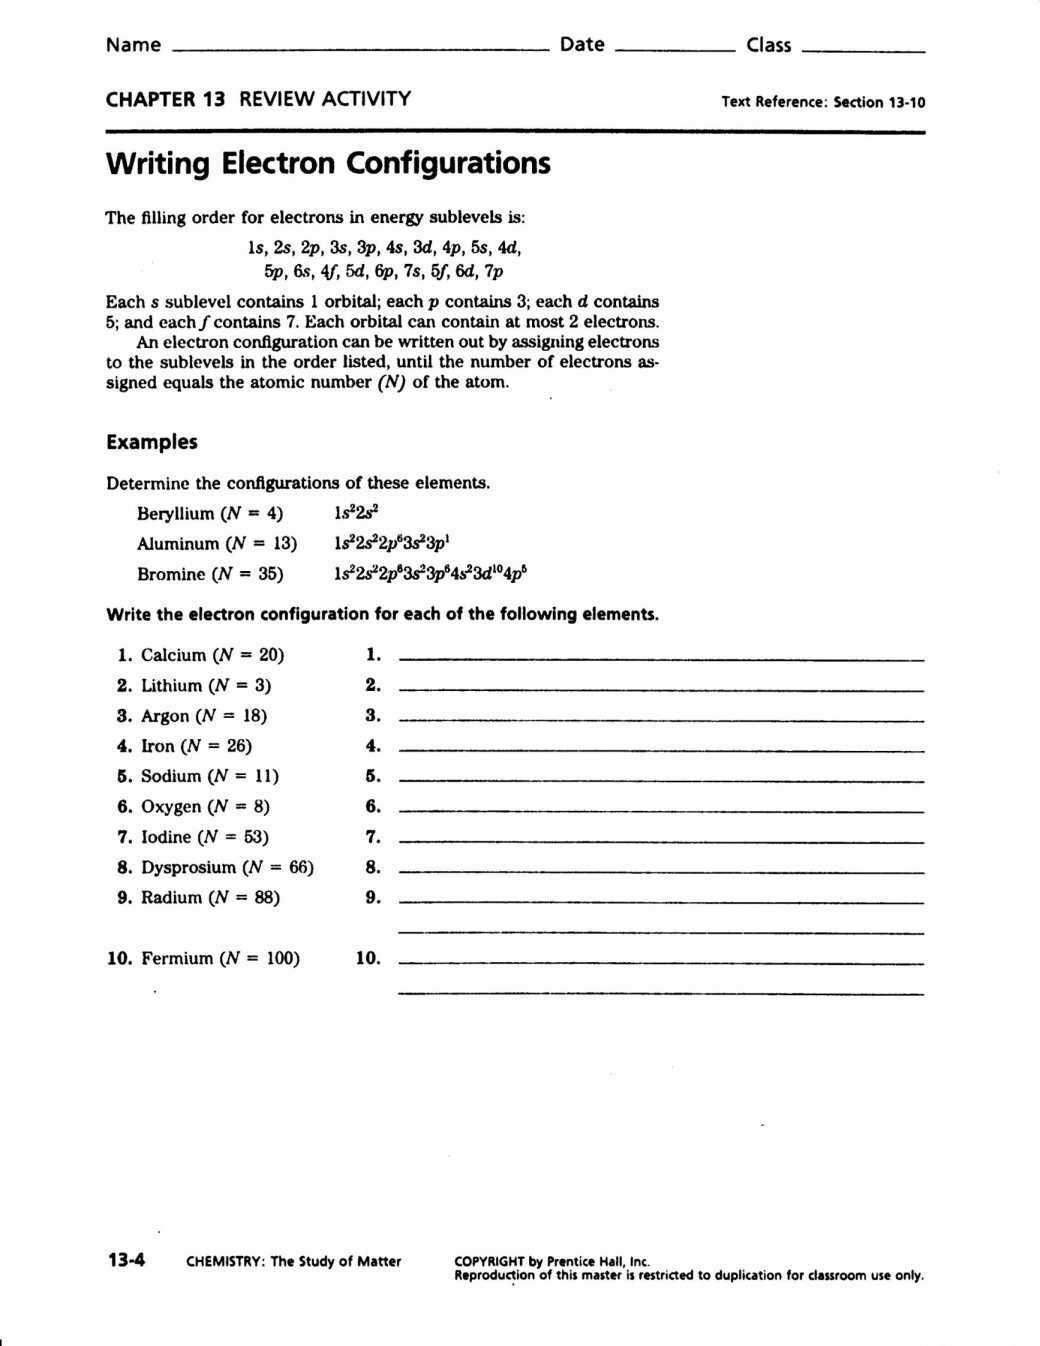 Physical and Chemical Properties Worksheet Lovely Worksheet 2 Physical Chemical Properties Changes